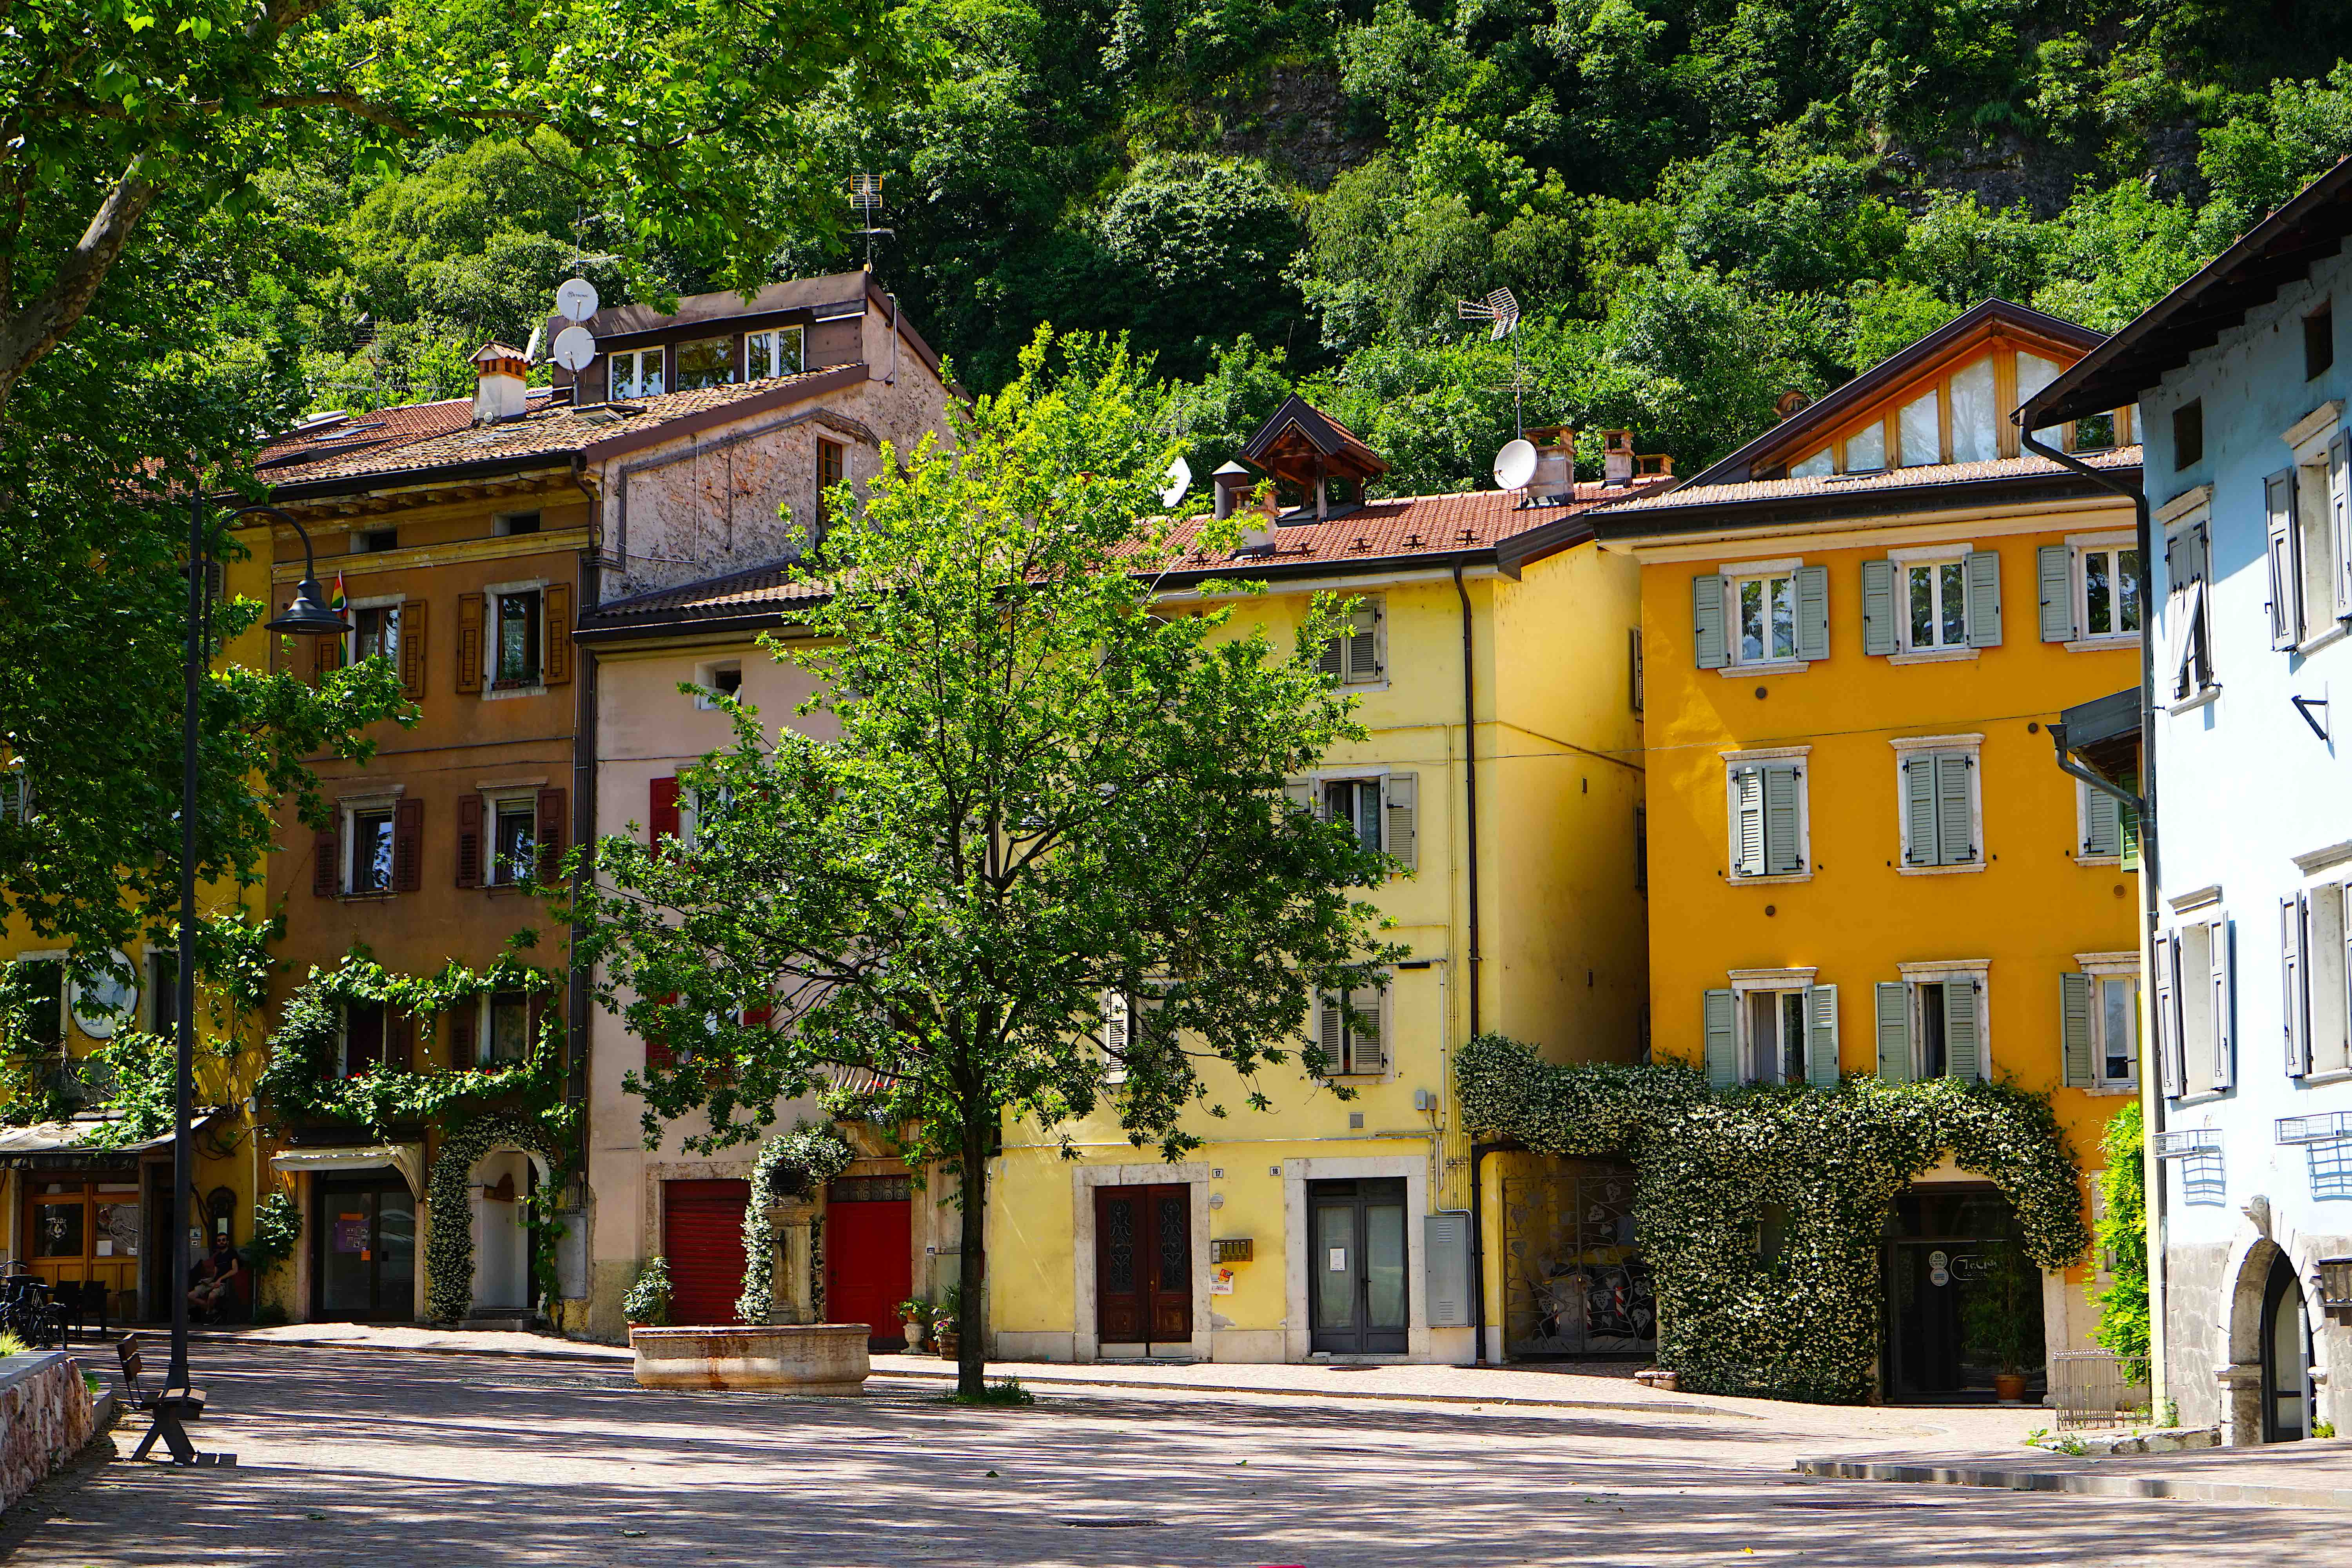 Colorful houses in Trento